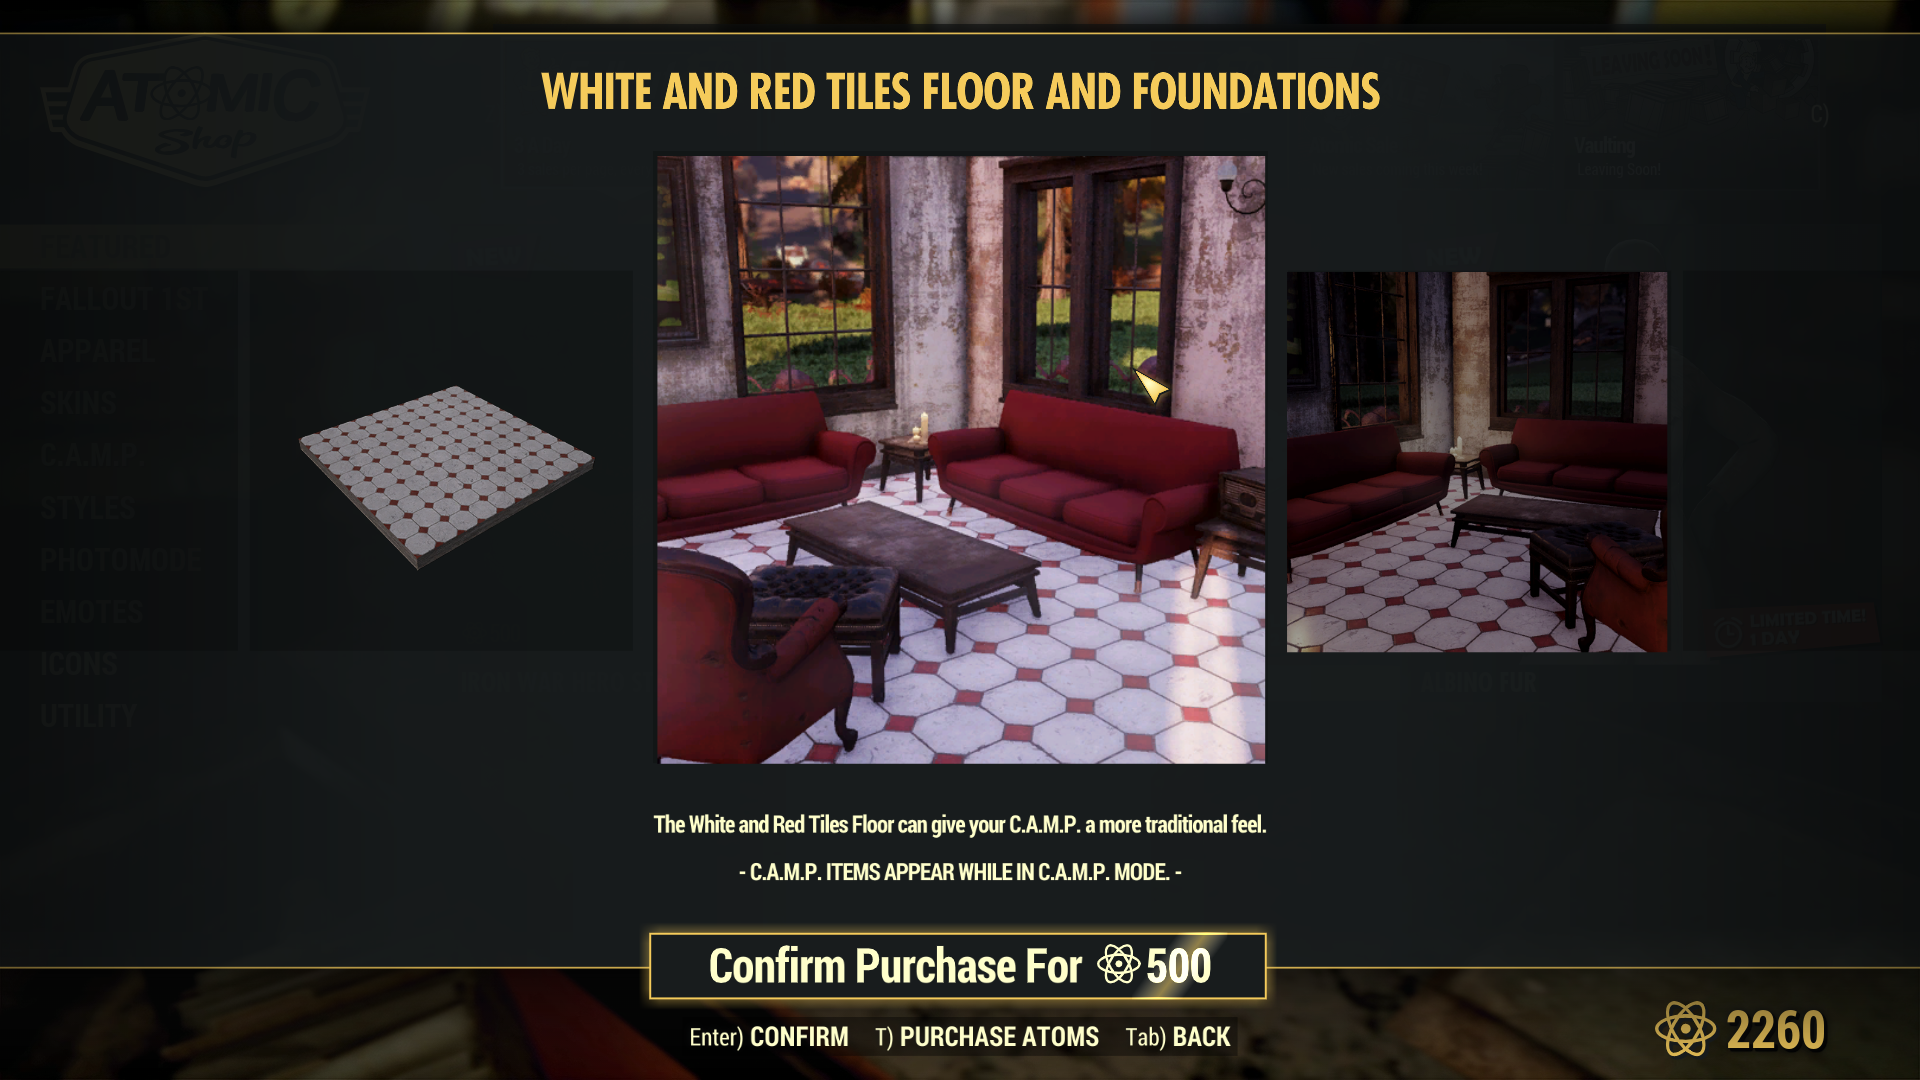 White and Red Tiles Floor and Foundation